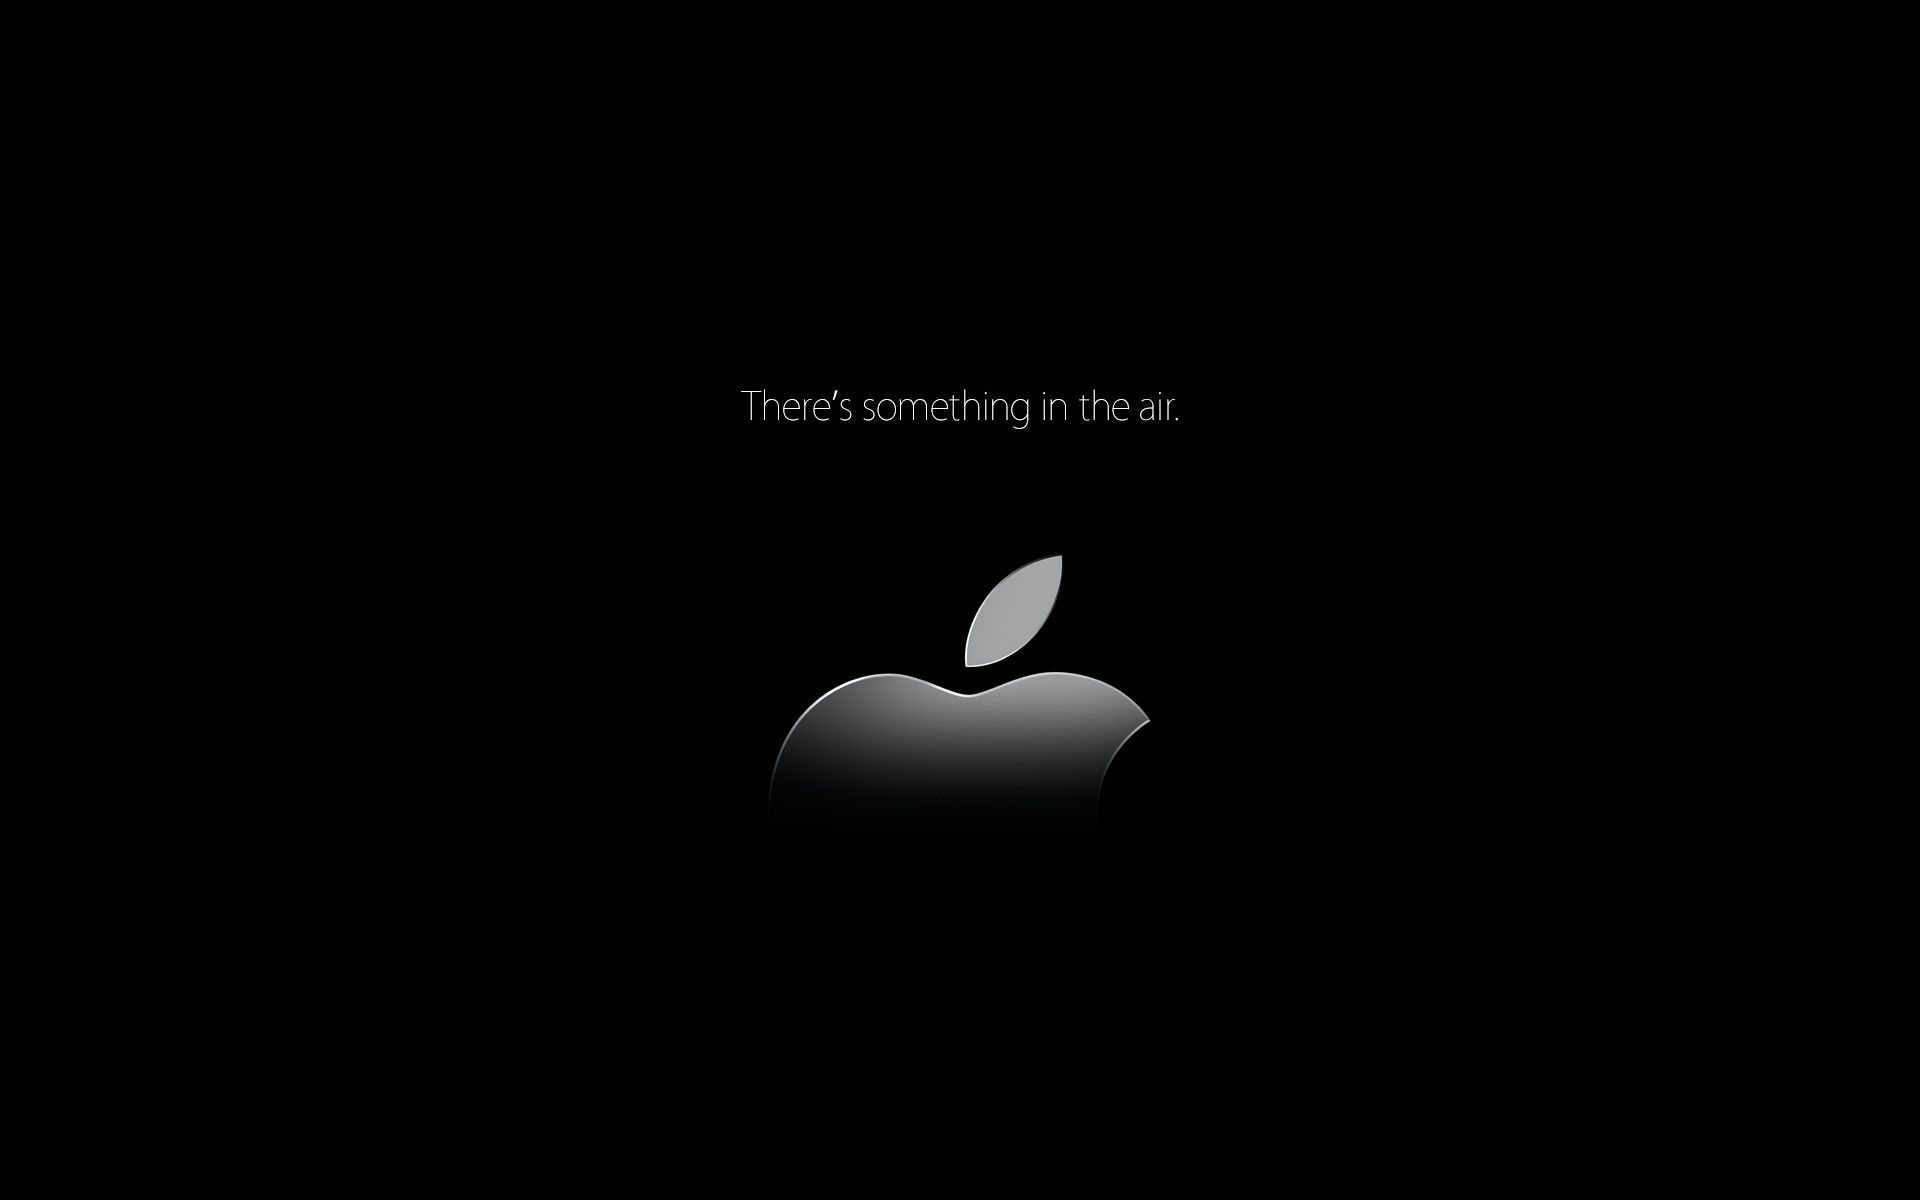 Brand PC Puter Apple Dark HD Wallpaper Desktop